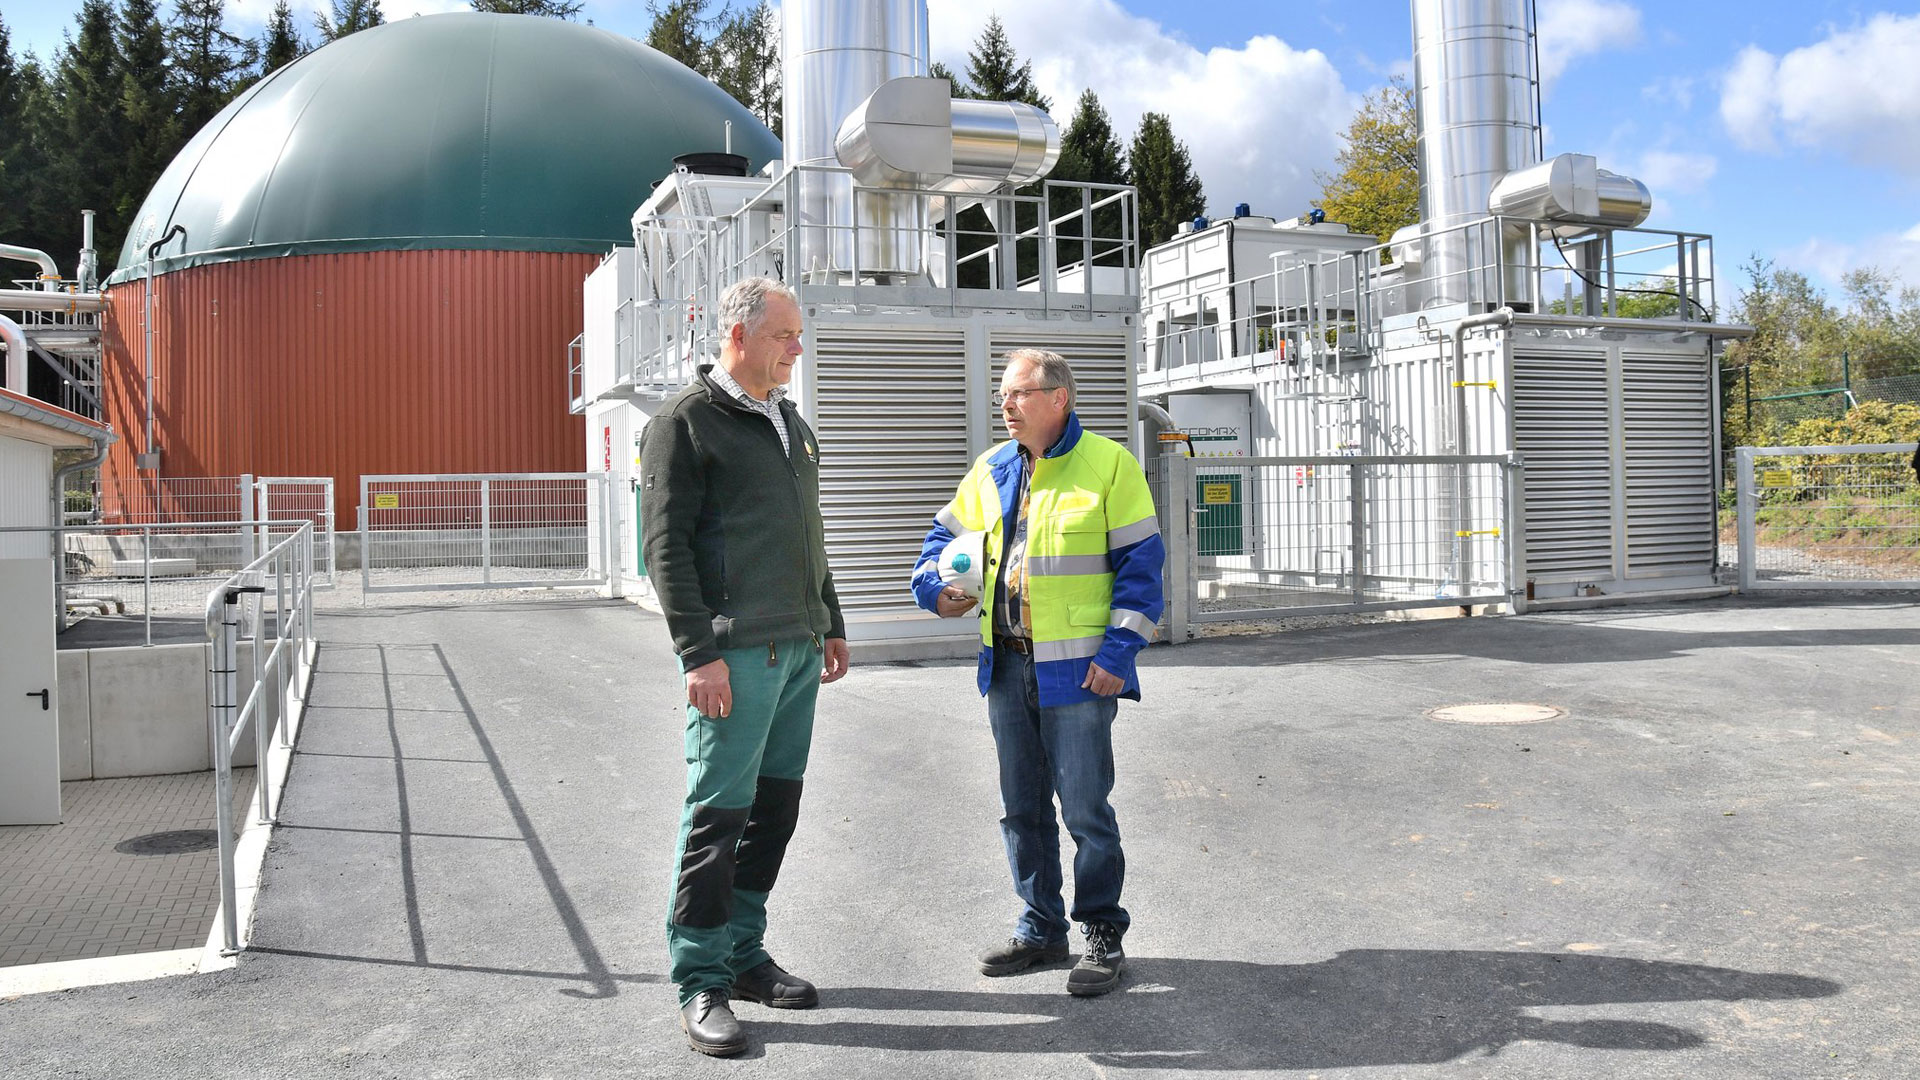 , Composting & biogas plant in Sundern Germany